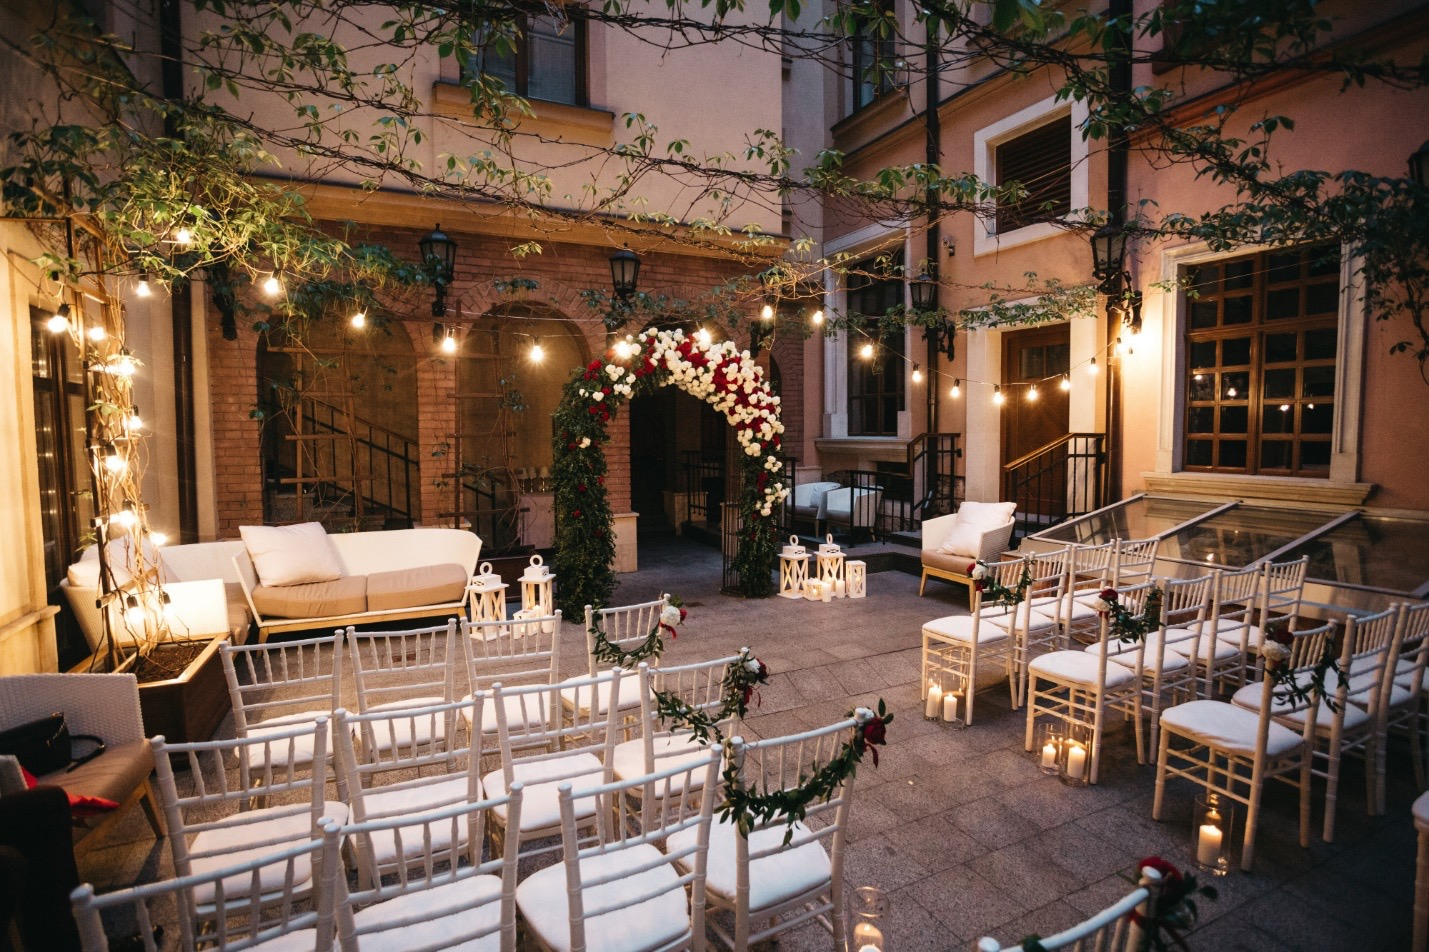 10 tips for finding the perfect small wedding venue  AZ Big Media